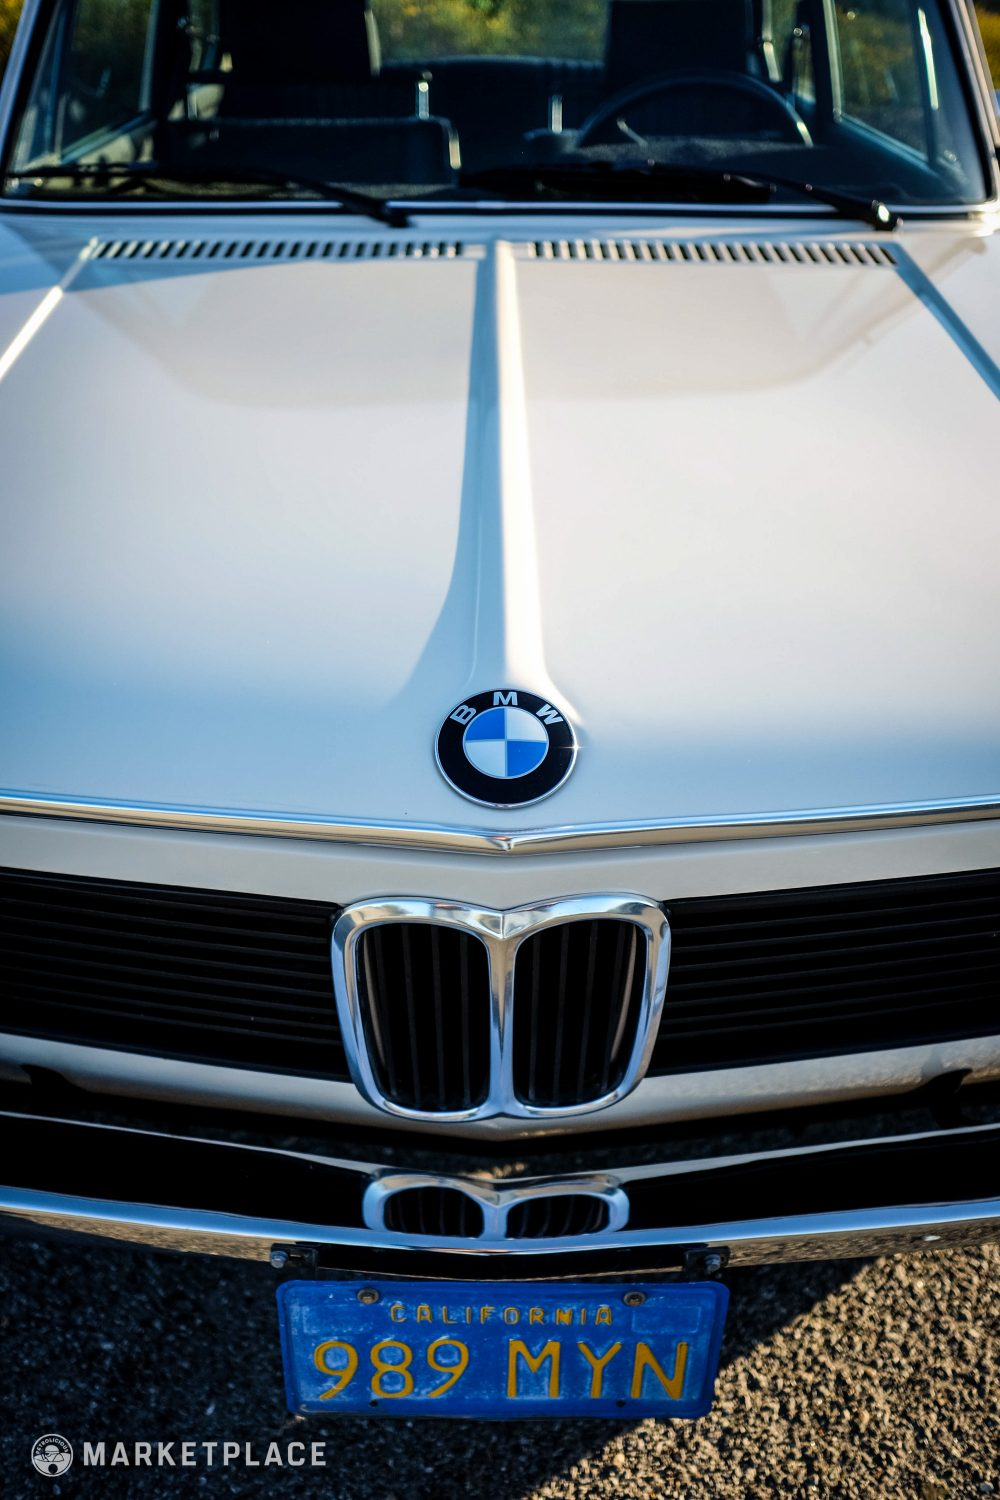 1975 Bmw 2002 Petrolicious 1968 Wiring Diagram Chrome Glass Every Piece Of Is Original To The Car All Polished Metalwork Free Hazing Pitting Or Warpage